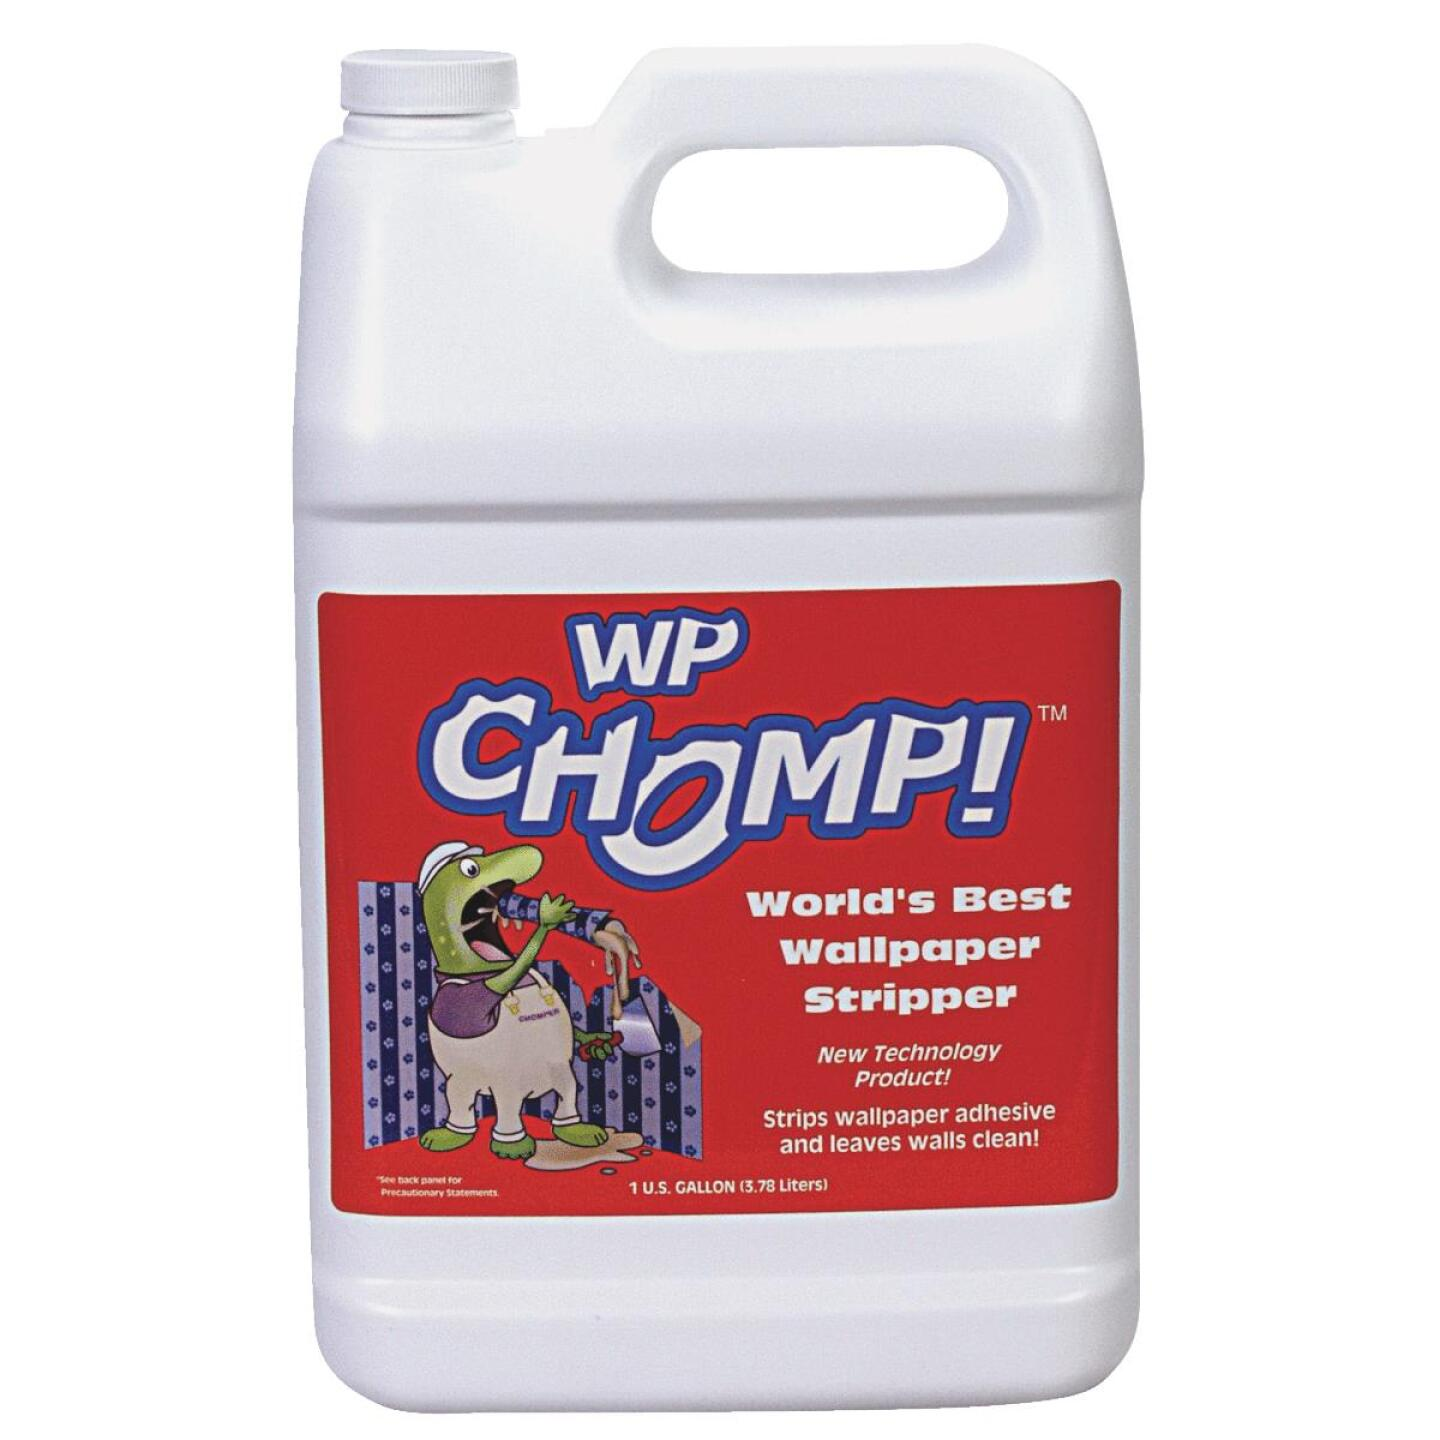 WP Chomp 1 Gal. Wallpaper Remover Image 1